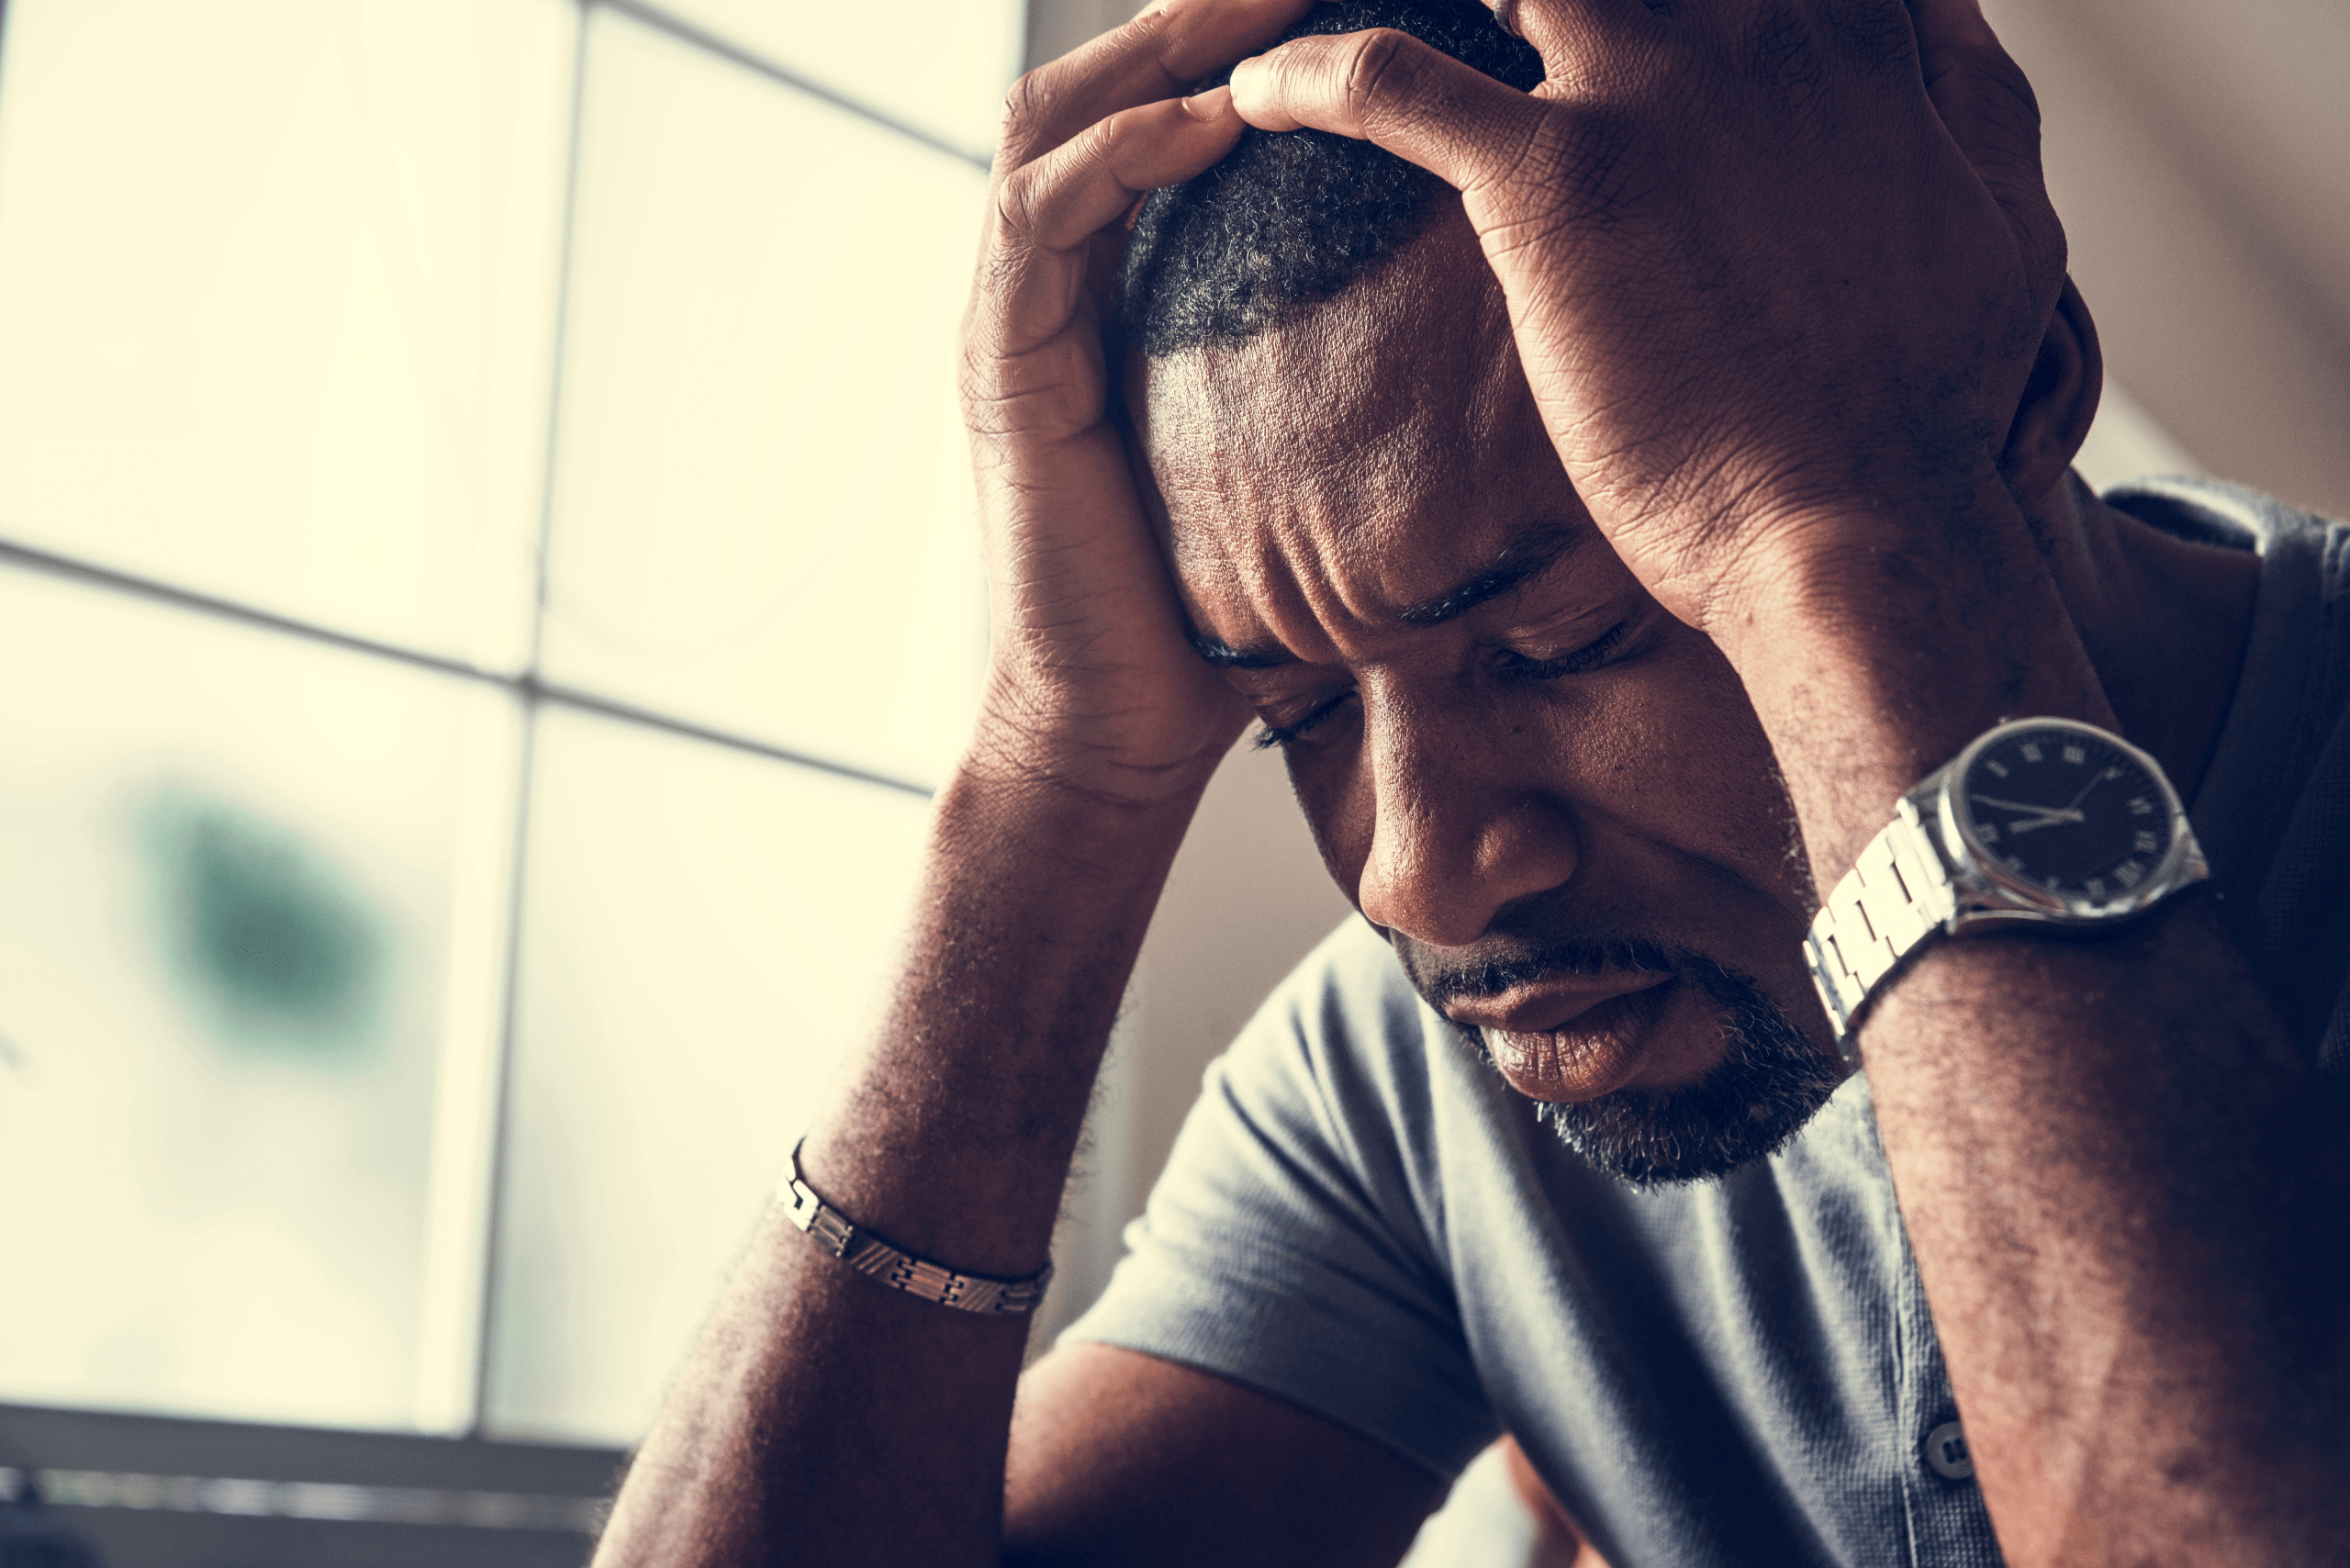 Depressed man holding his head with both hands